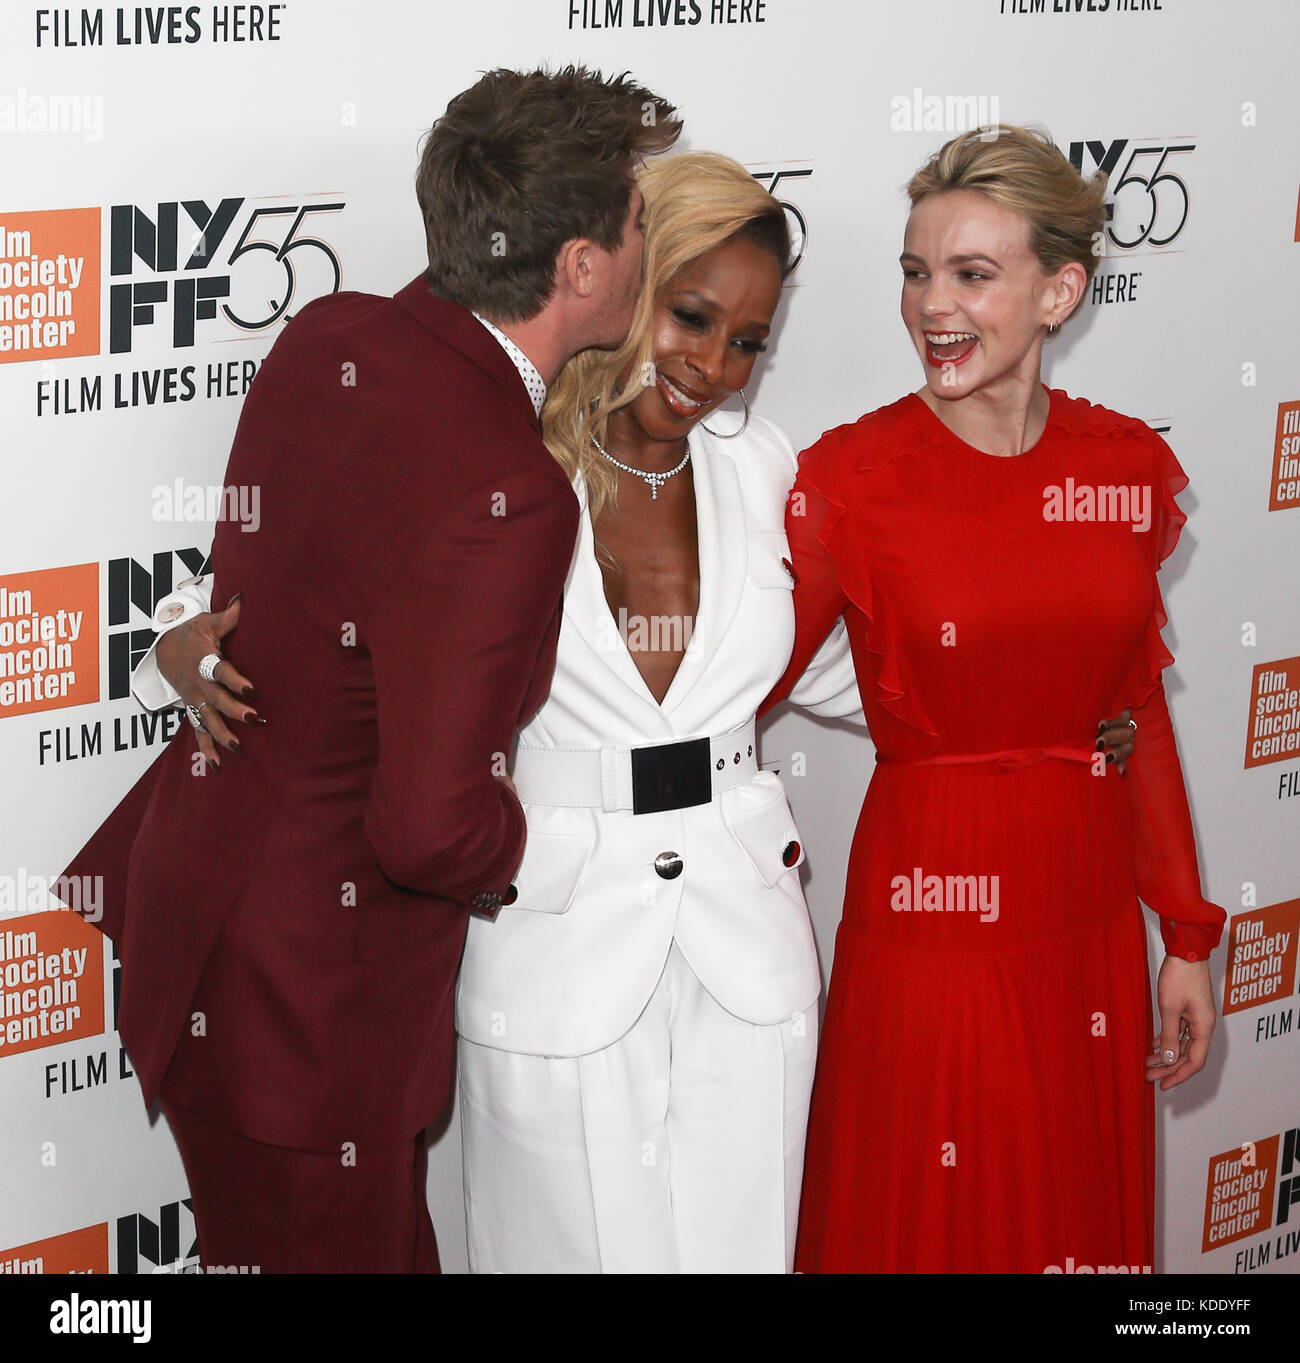 (L-R) Actors Garrett Hedlund, Mary J. Blige and Carey Mulligan attend the 'Mudbound' premiere at Alice Tully - Stock Image